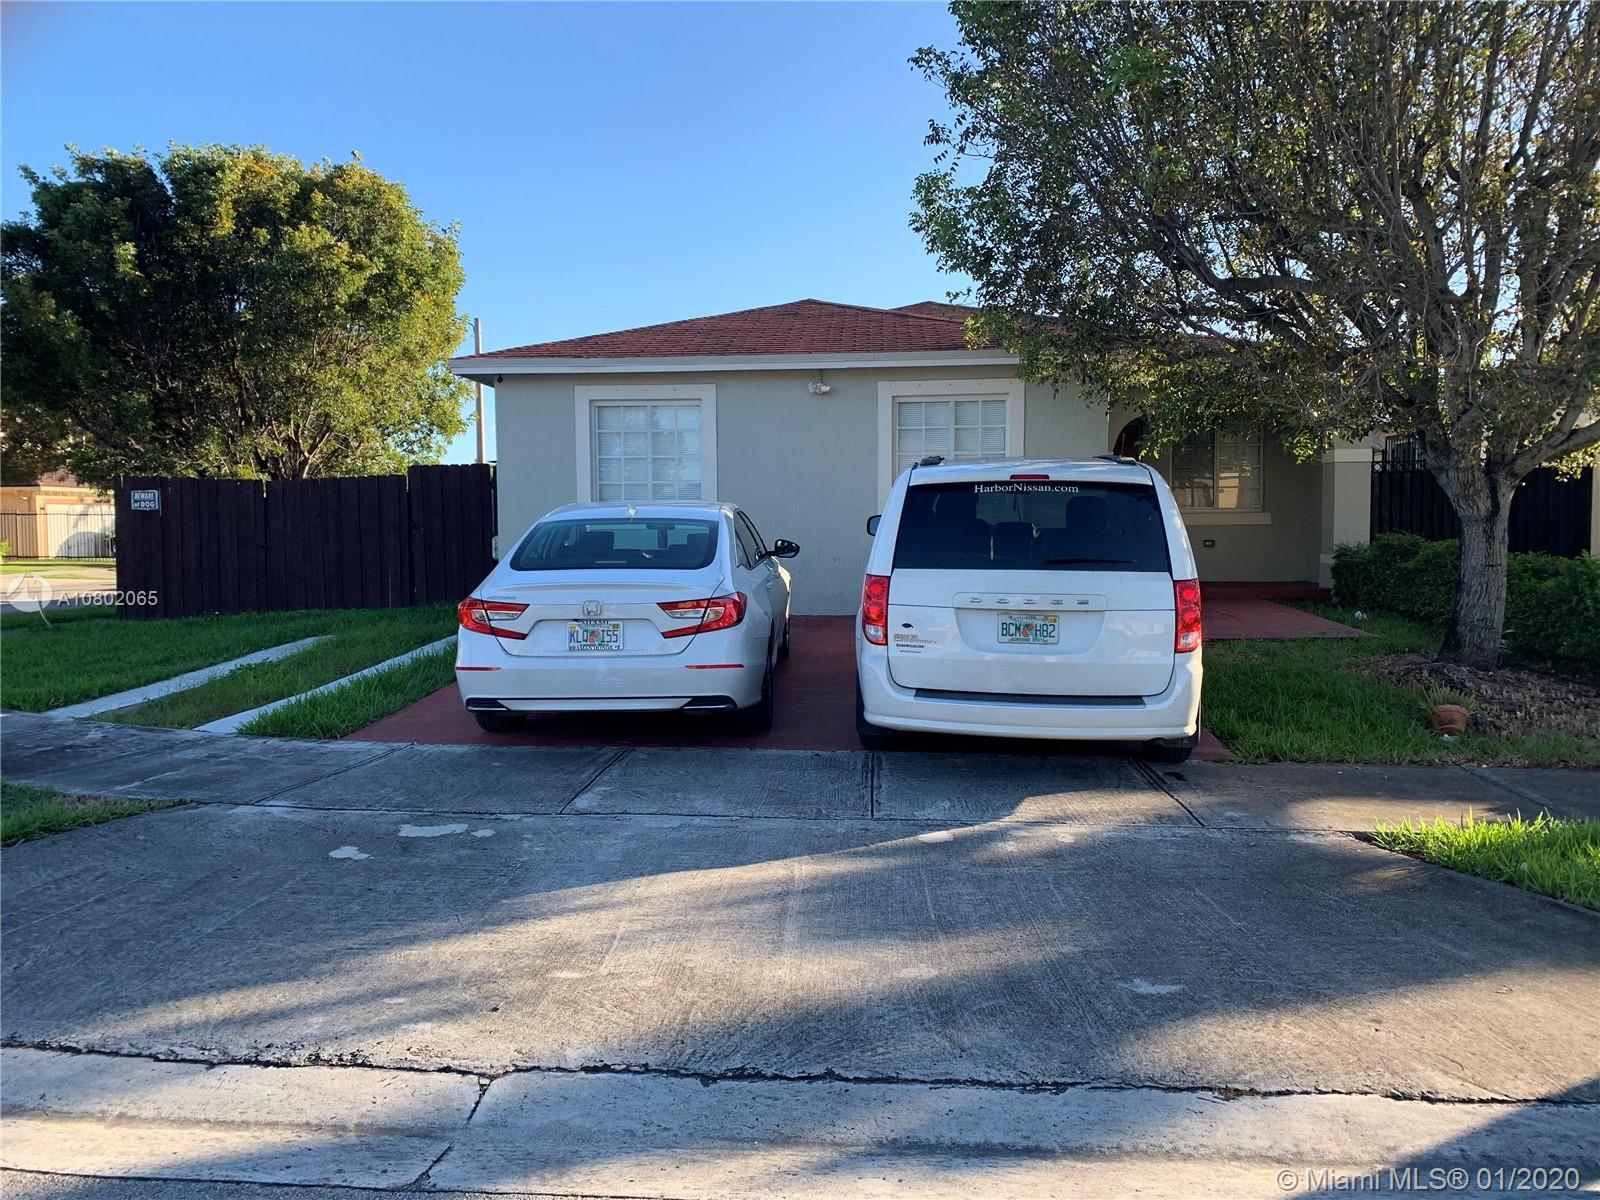 13404 SW 270th St, Homestead, FL 33032 - Homestead, FL real estate listing